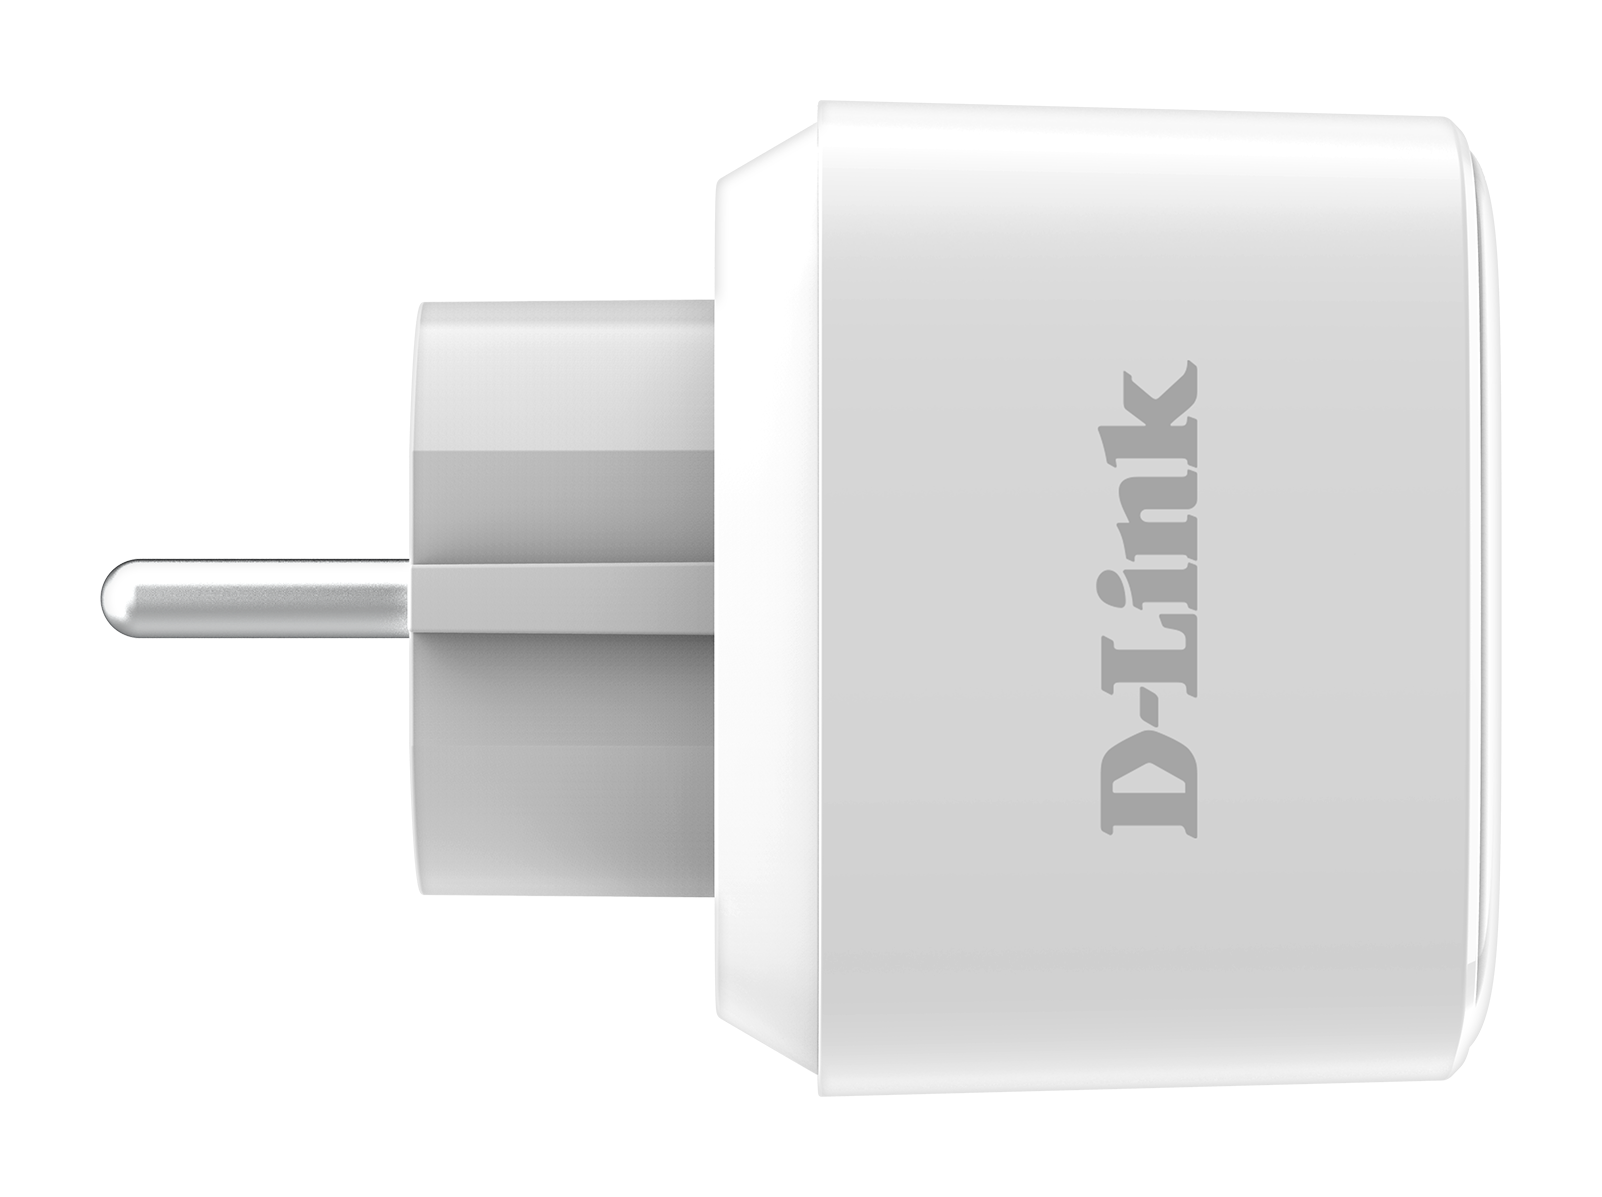 DSP-W118 Mini Wi-Fi Smart Plug - Side EU